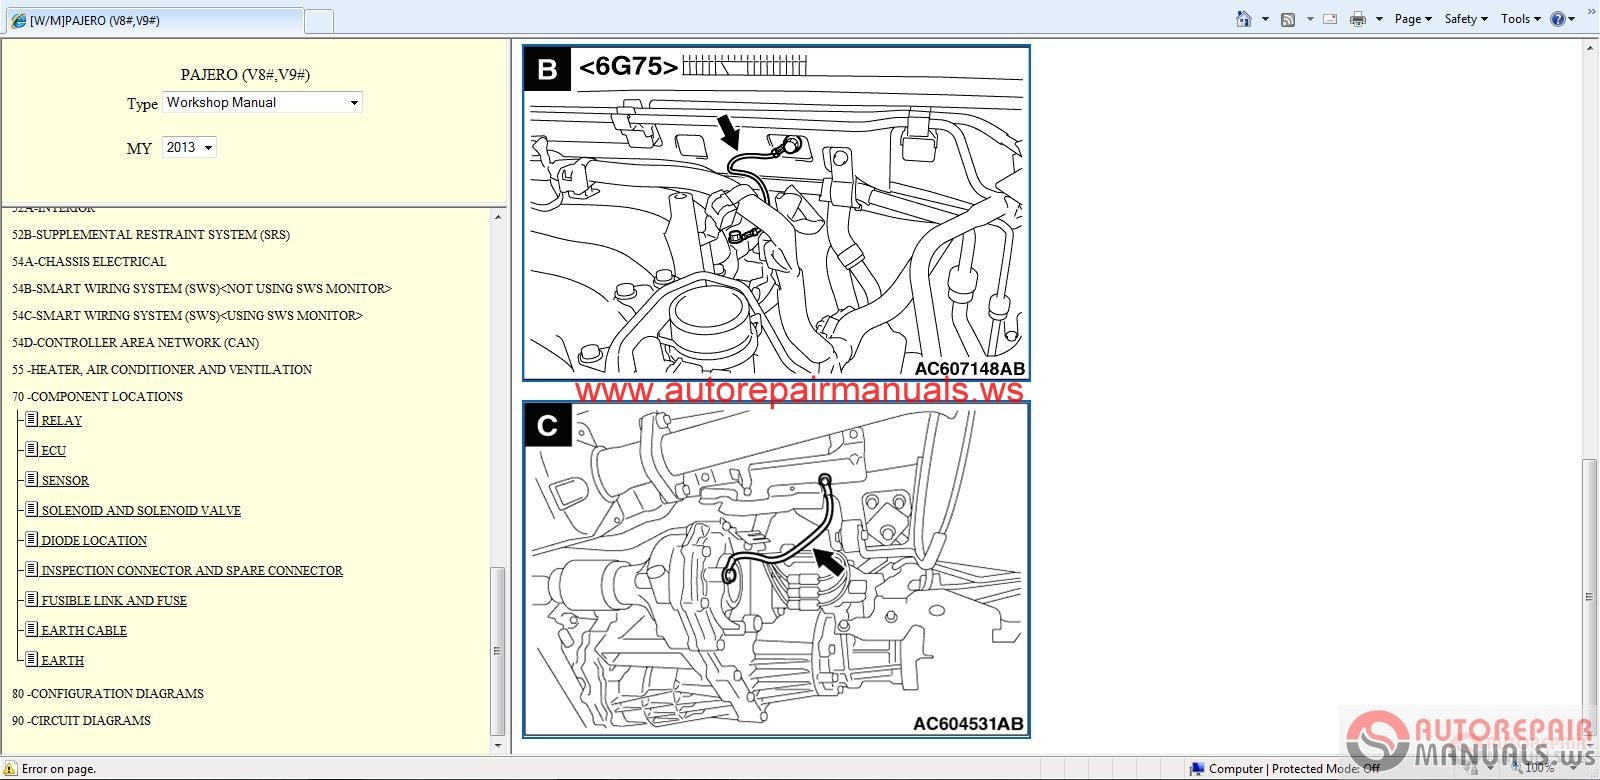 Mitsubishi_Pajero_2013_Service_Manual4 mitsubishi pajero 2013 service manual auto repair manual forum pajero automatic transmission wiring diagram at alyssarenee.co